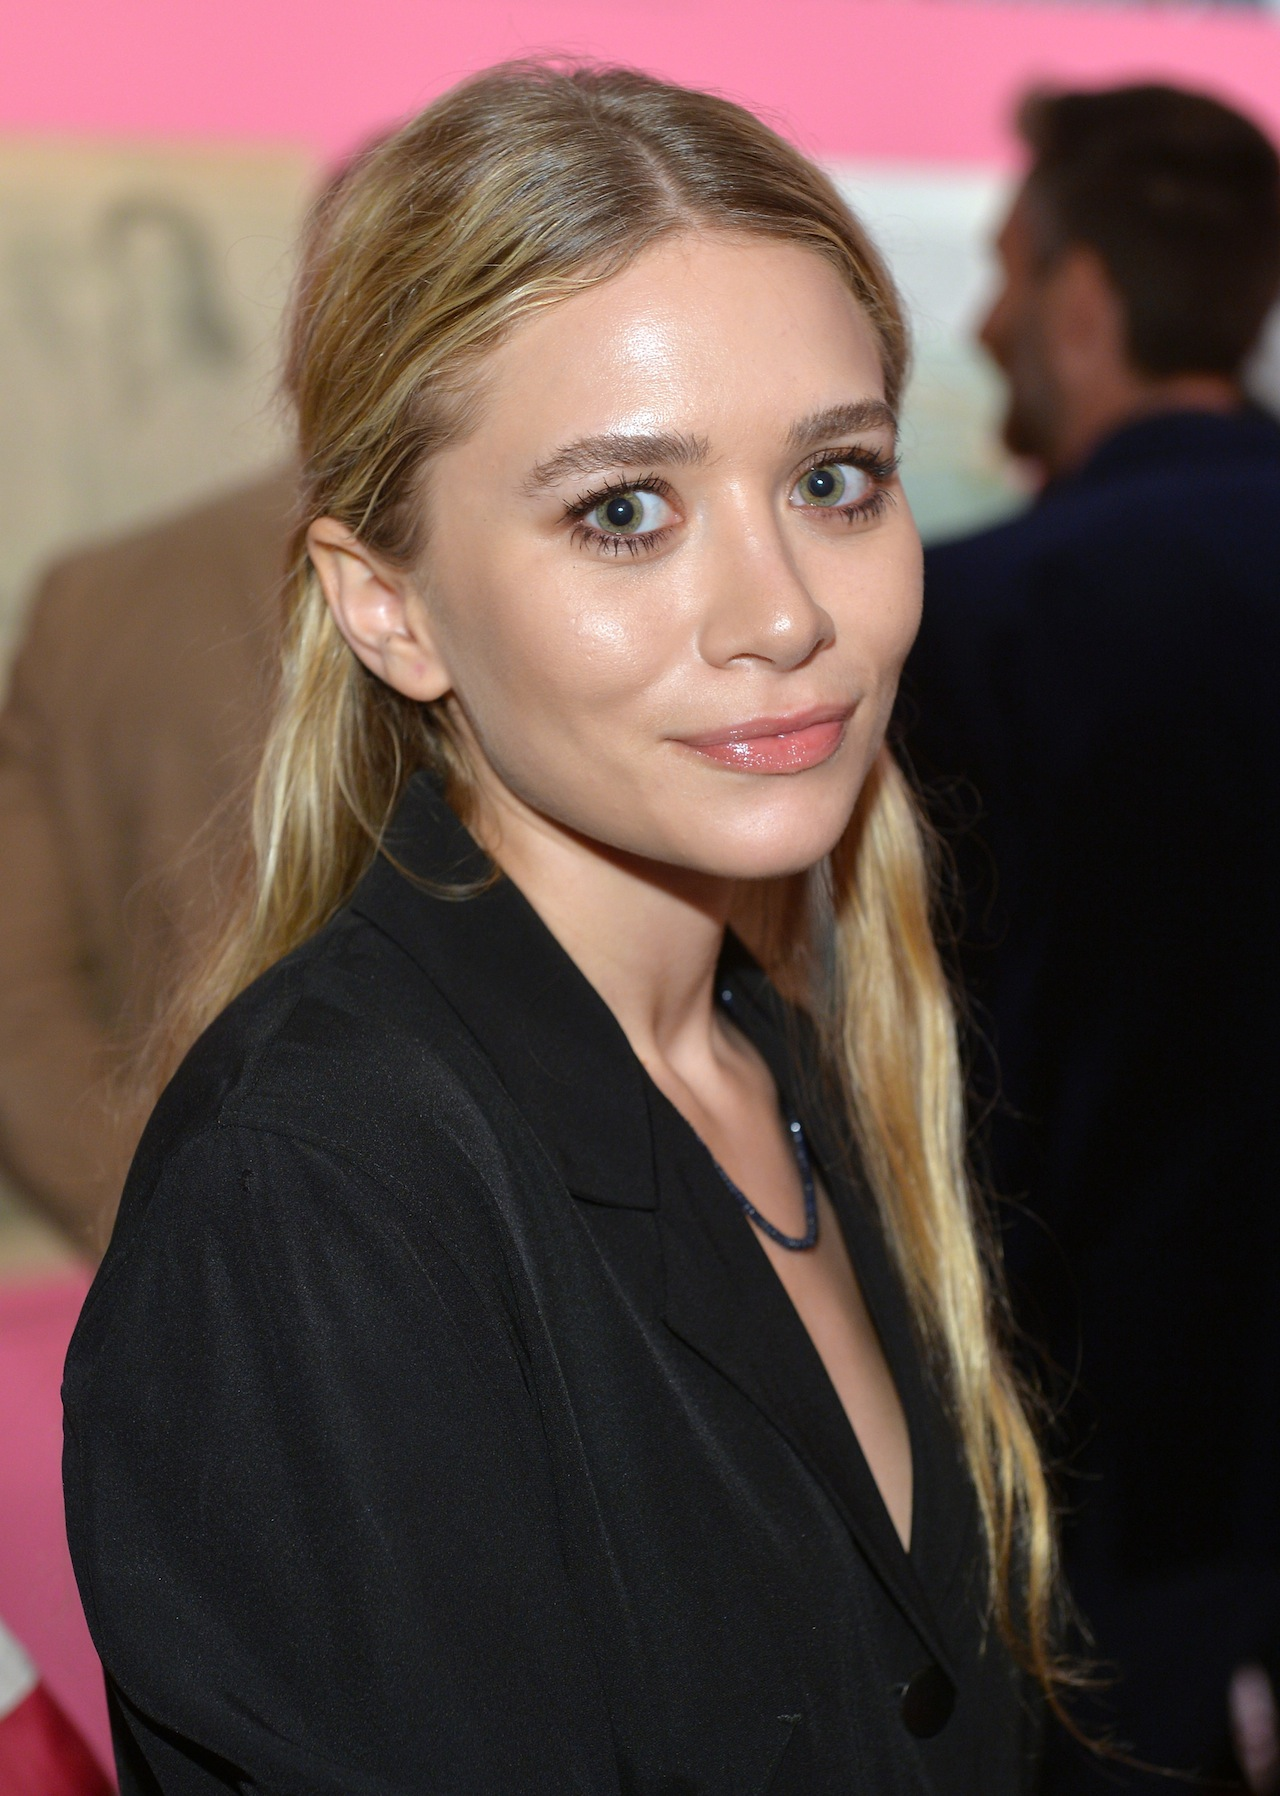 Mary kate olsen is dating nicolas sarkozys brother reports 8